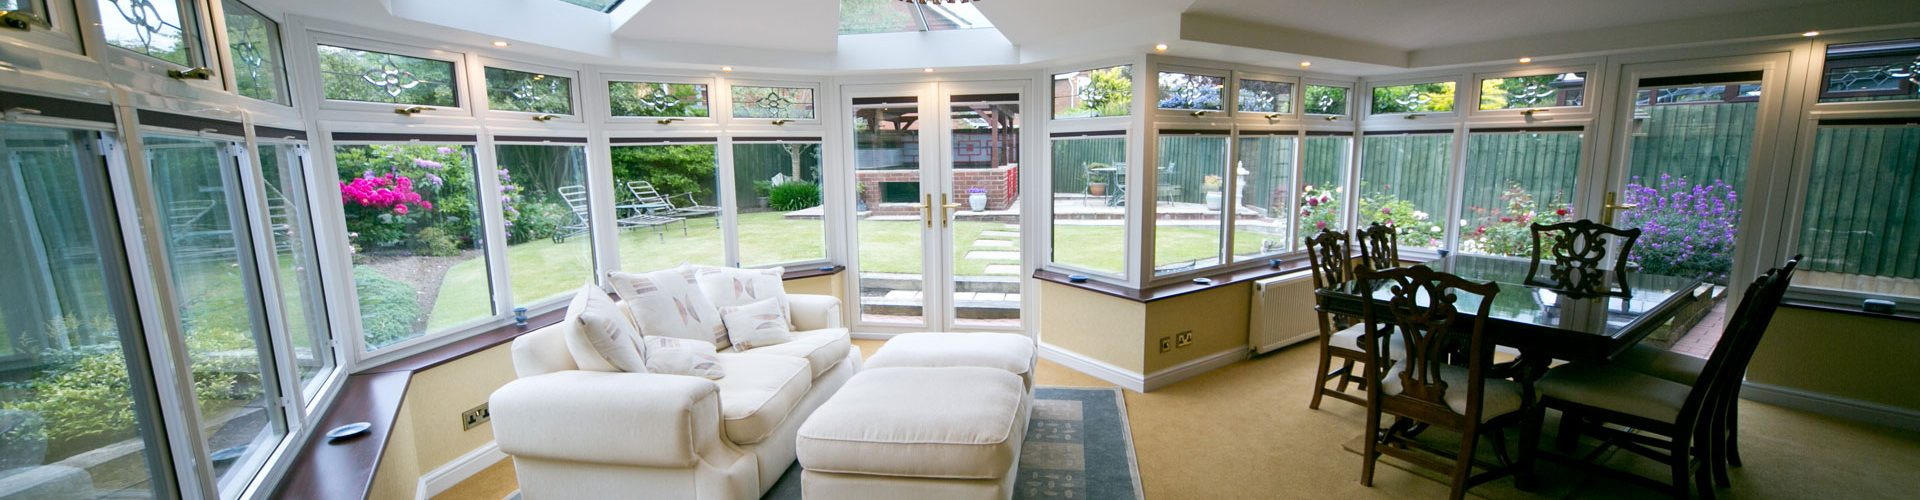 uPVC windows Biggleswade Bedfordshire